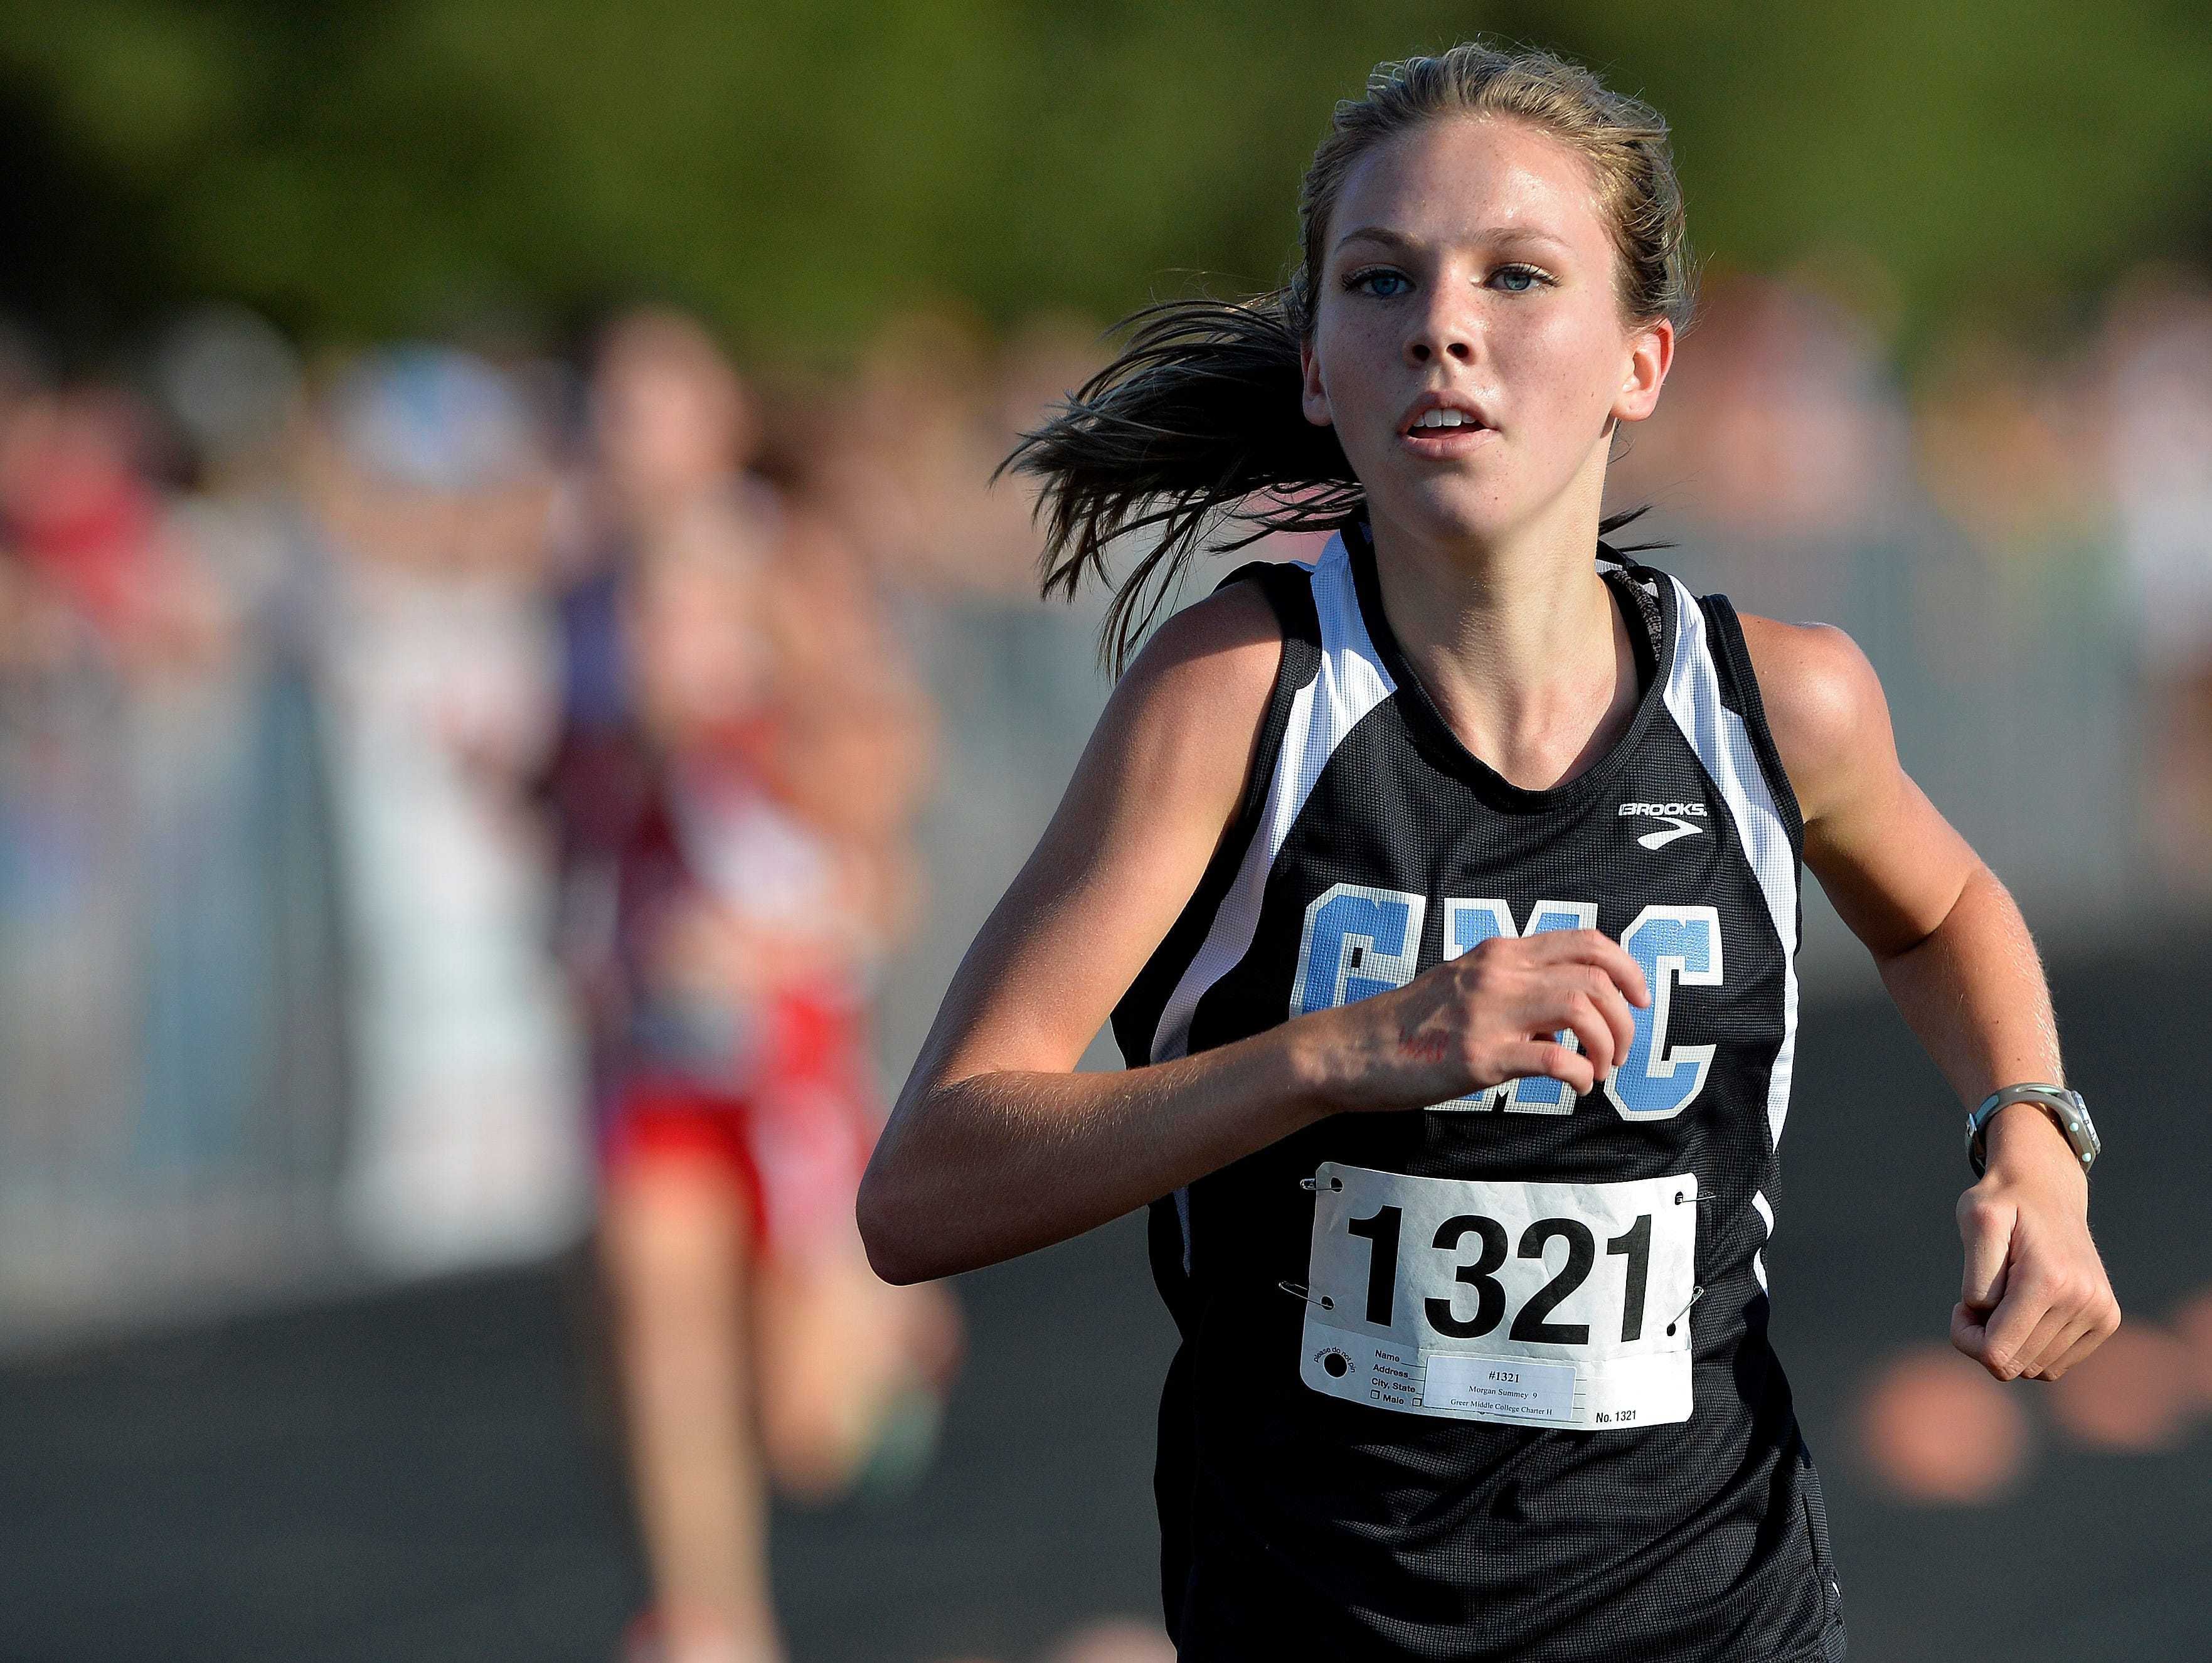 Greer Middle College's Morgan Summey wins the girls varsity Canned Food 5k cross country race at Hillcrest High School on Wednesday, September 23, 2015.